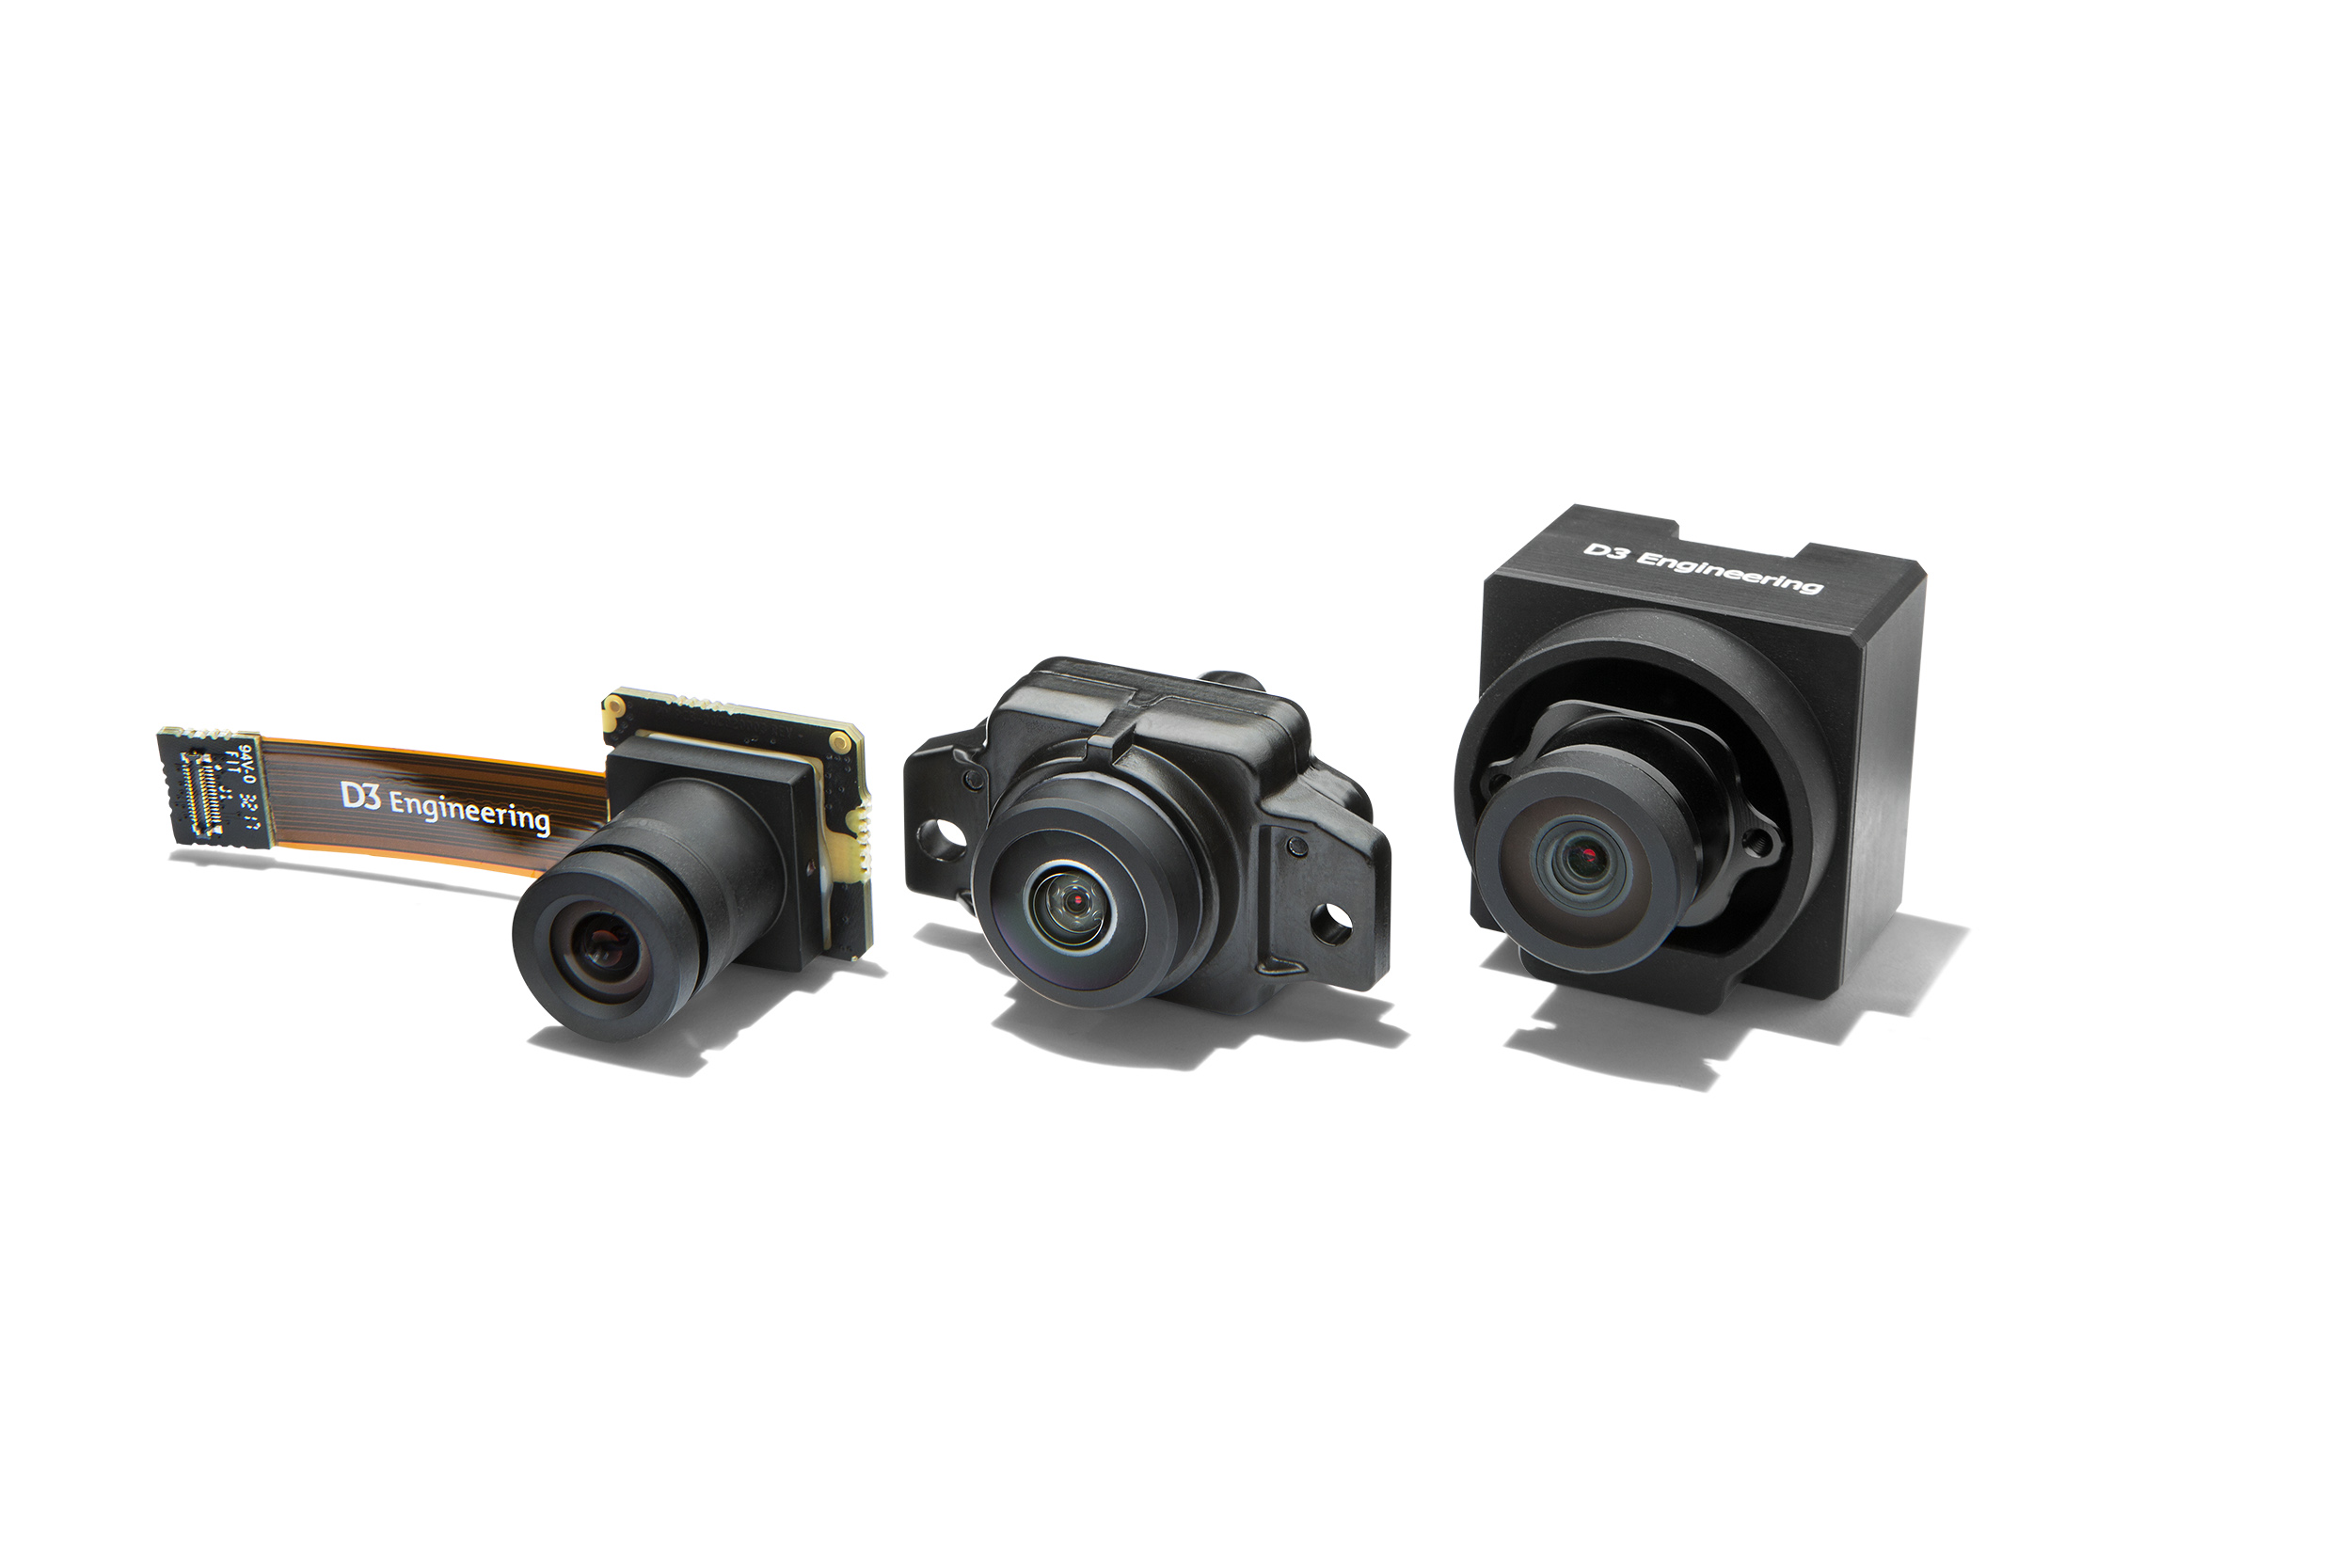 Additional Sensor Modules, Rugged Camera Modules, and Camera Modules